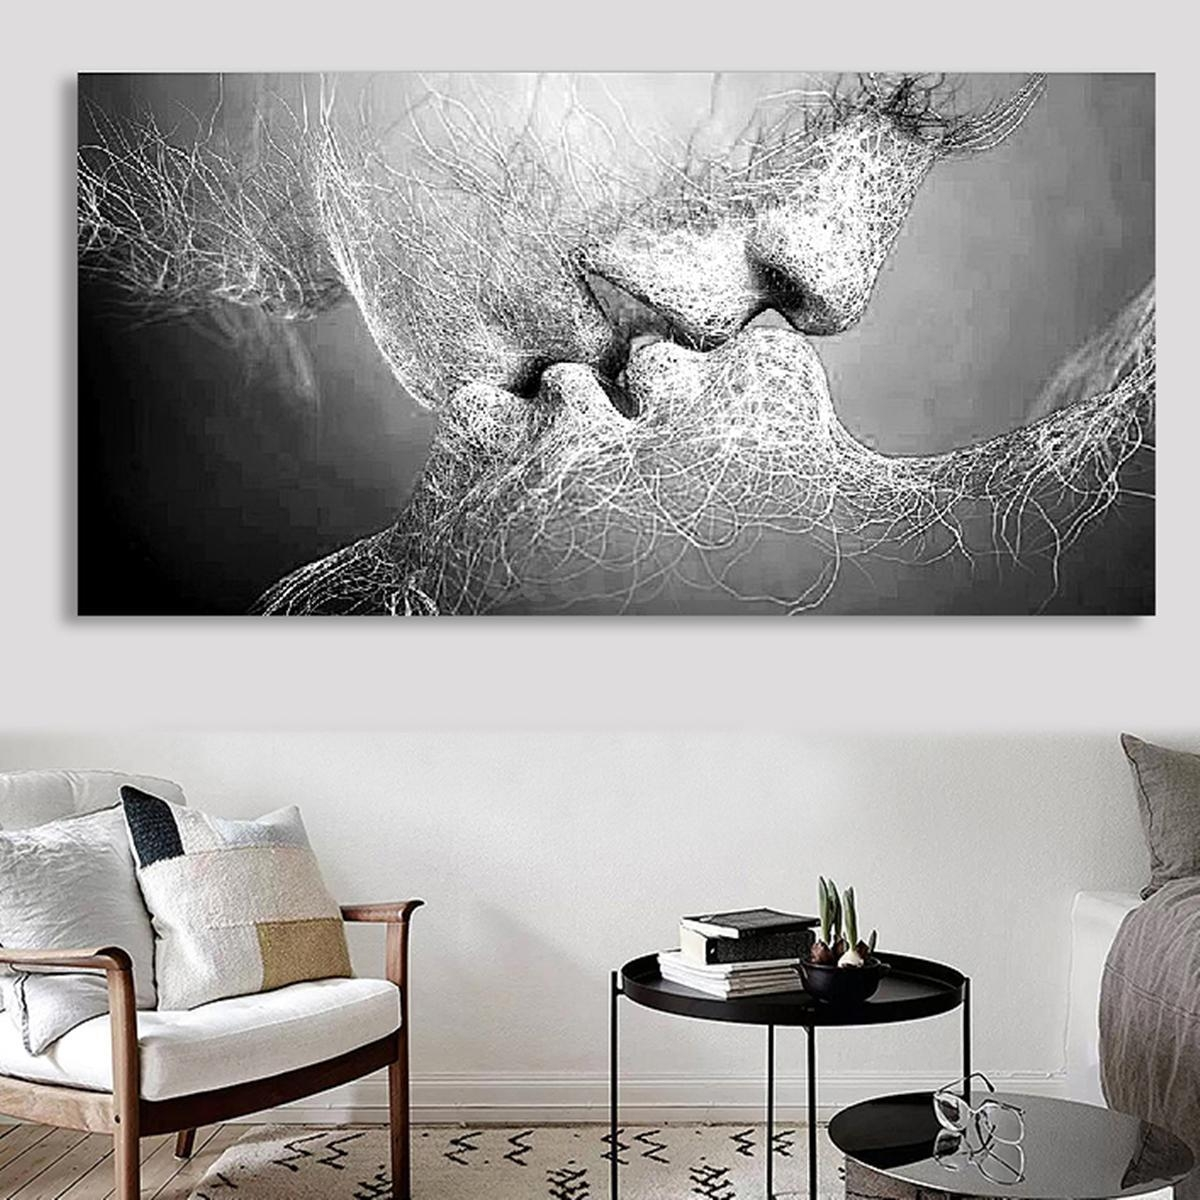 Black & White Love Kiss Abstract Art On Canvas Painting Wall Art Regarding Black Love Wall Art (View 3 of 20)